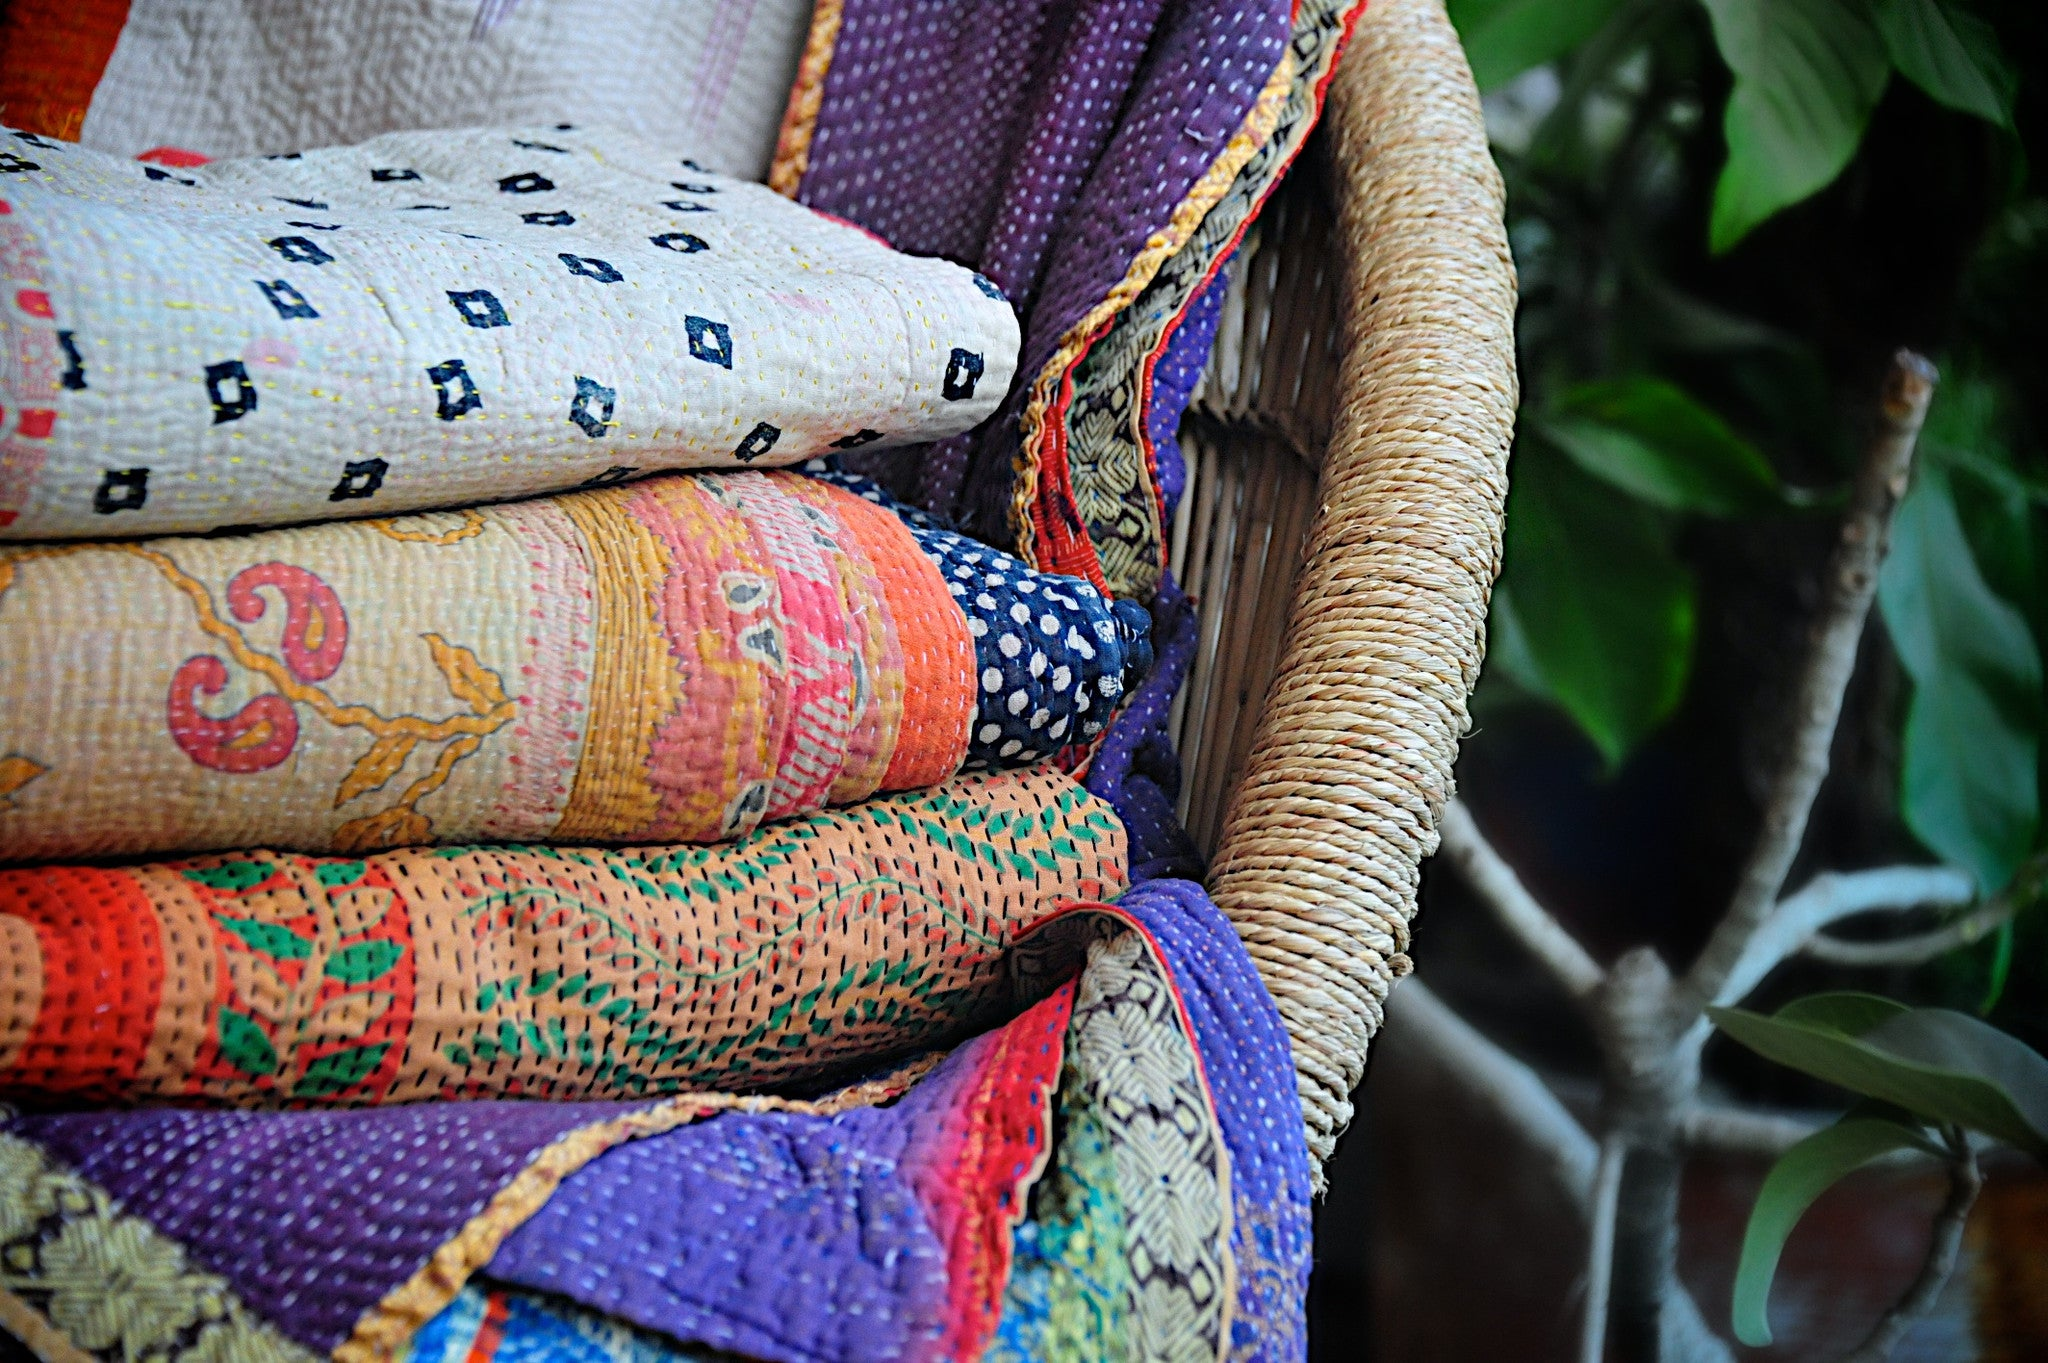 The Kantha Collection